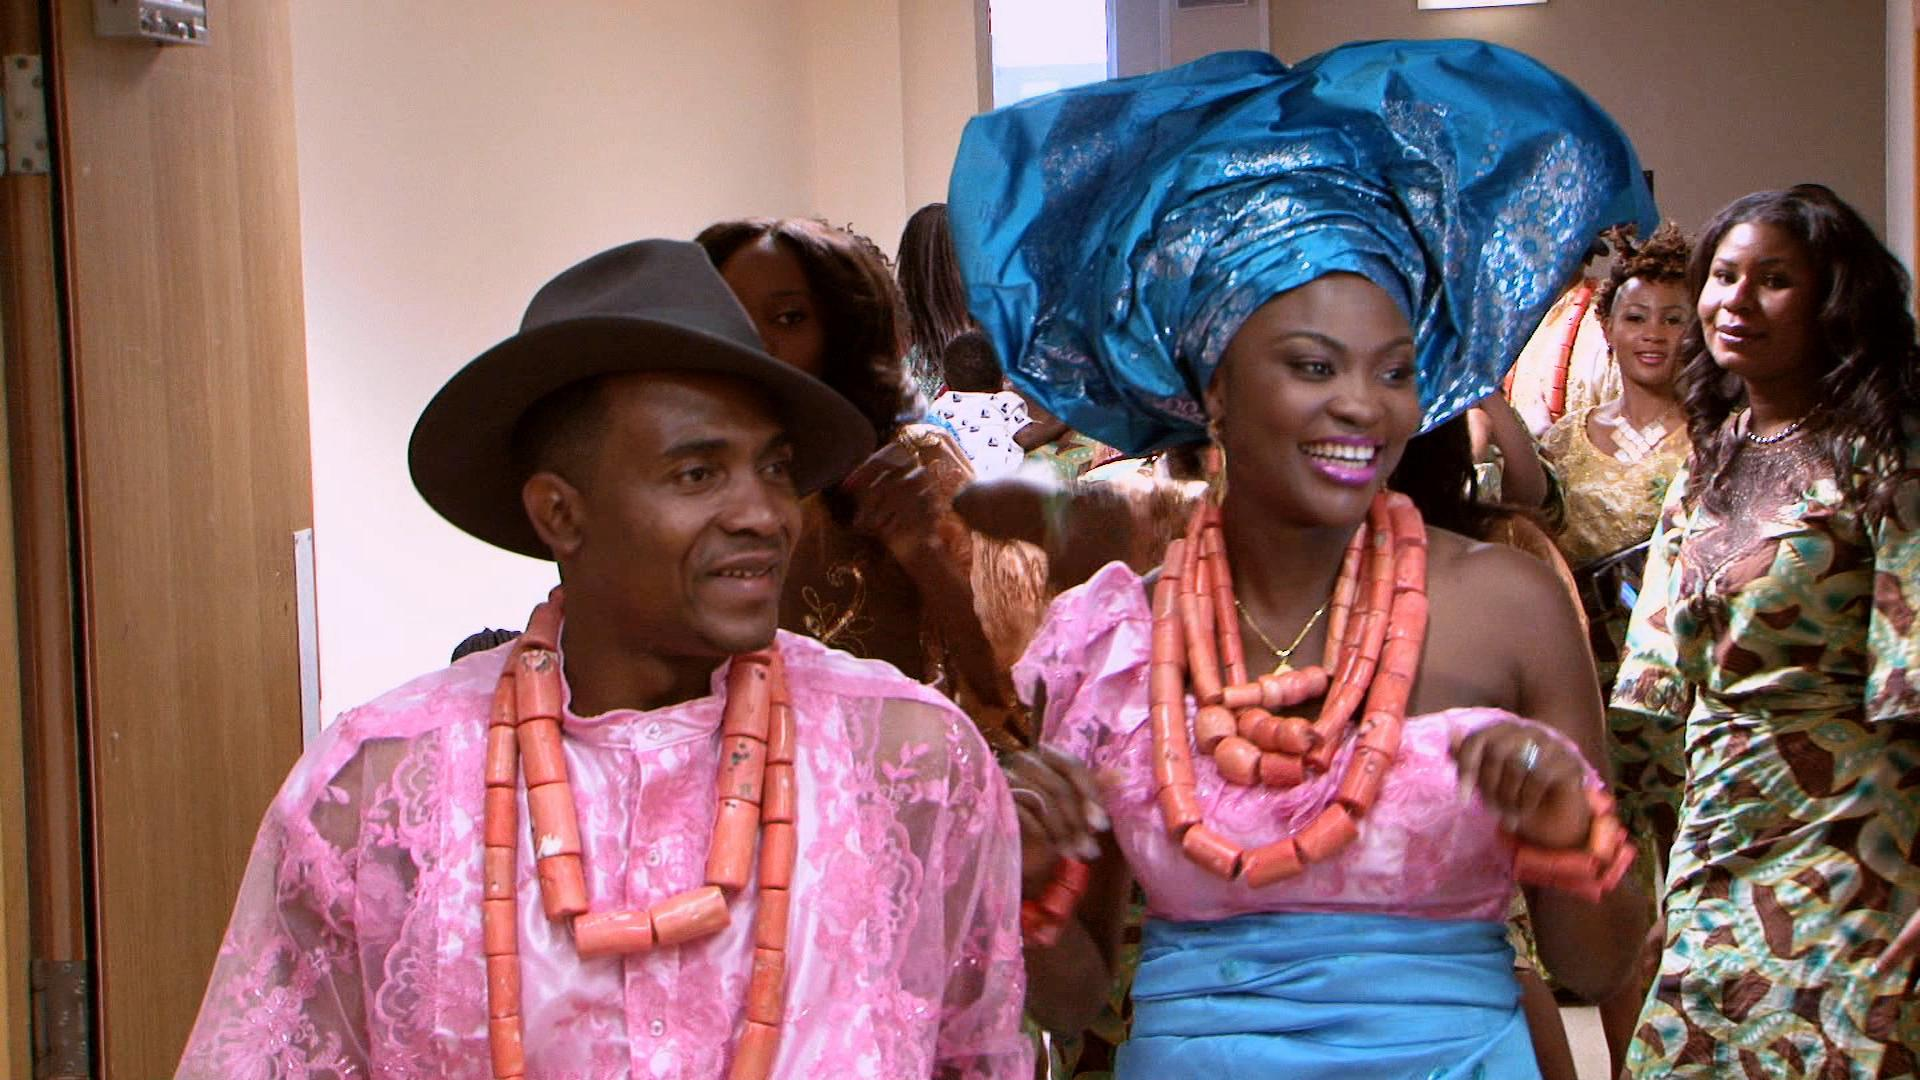 Filming nigerian wedding reception Portobello Films